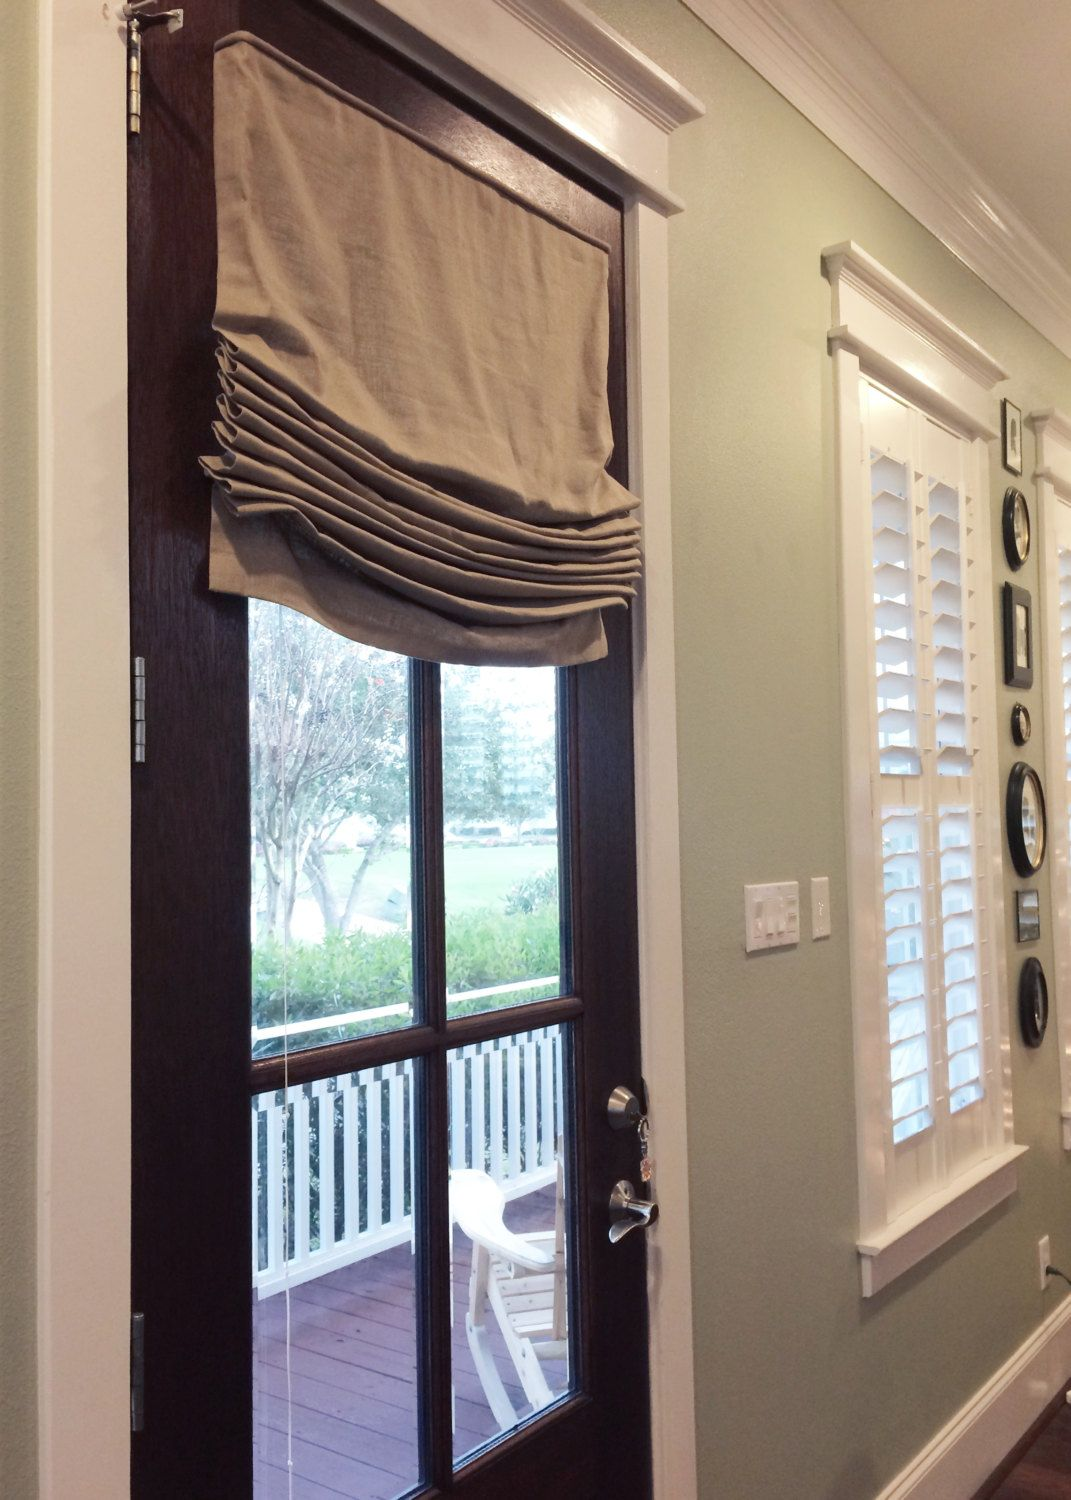 Relaxed roman shade window treatment custom made in robert allen